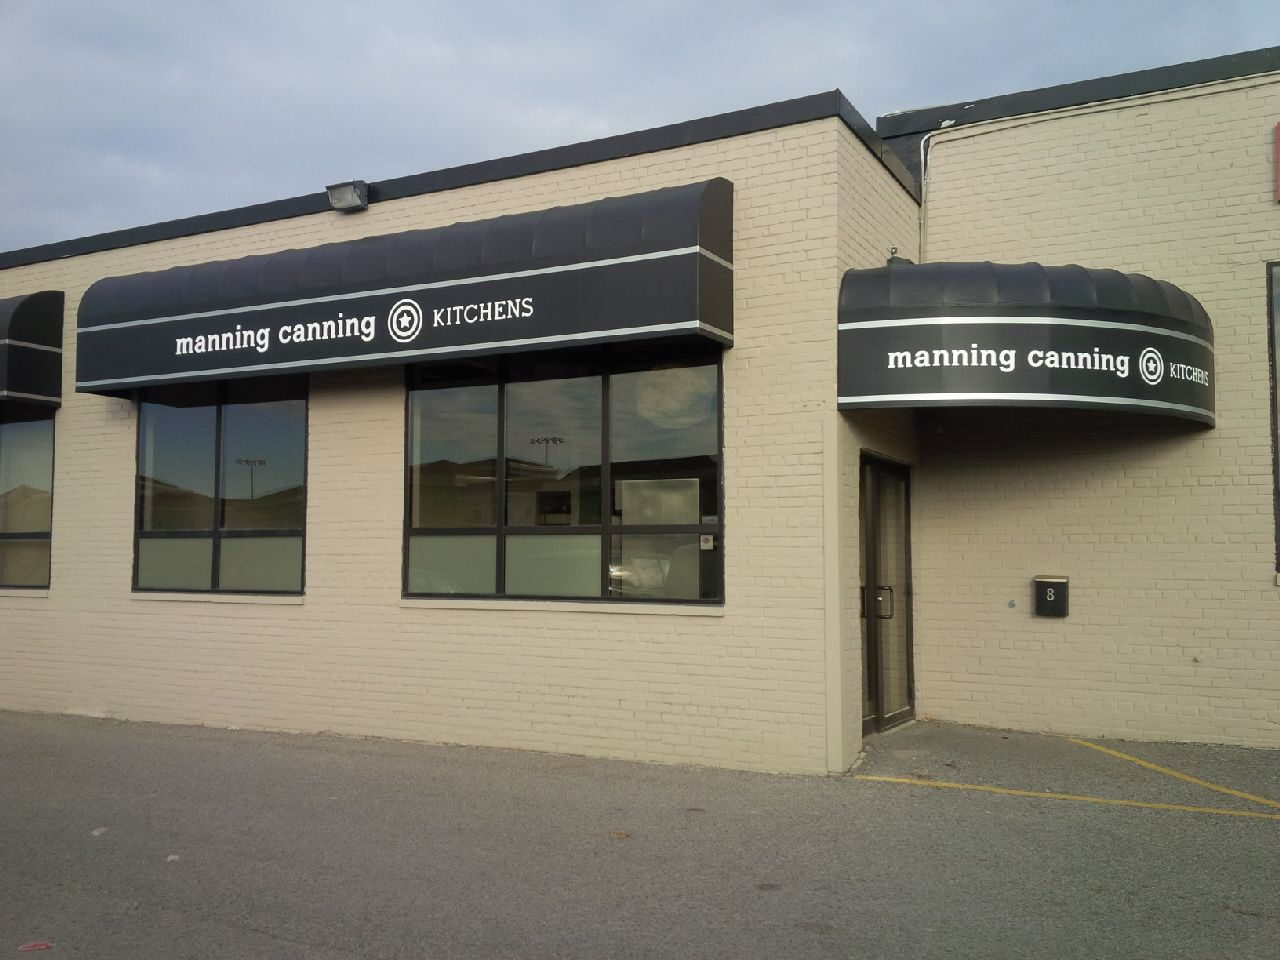 Manning Canning Kitchens